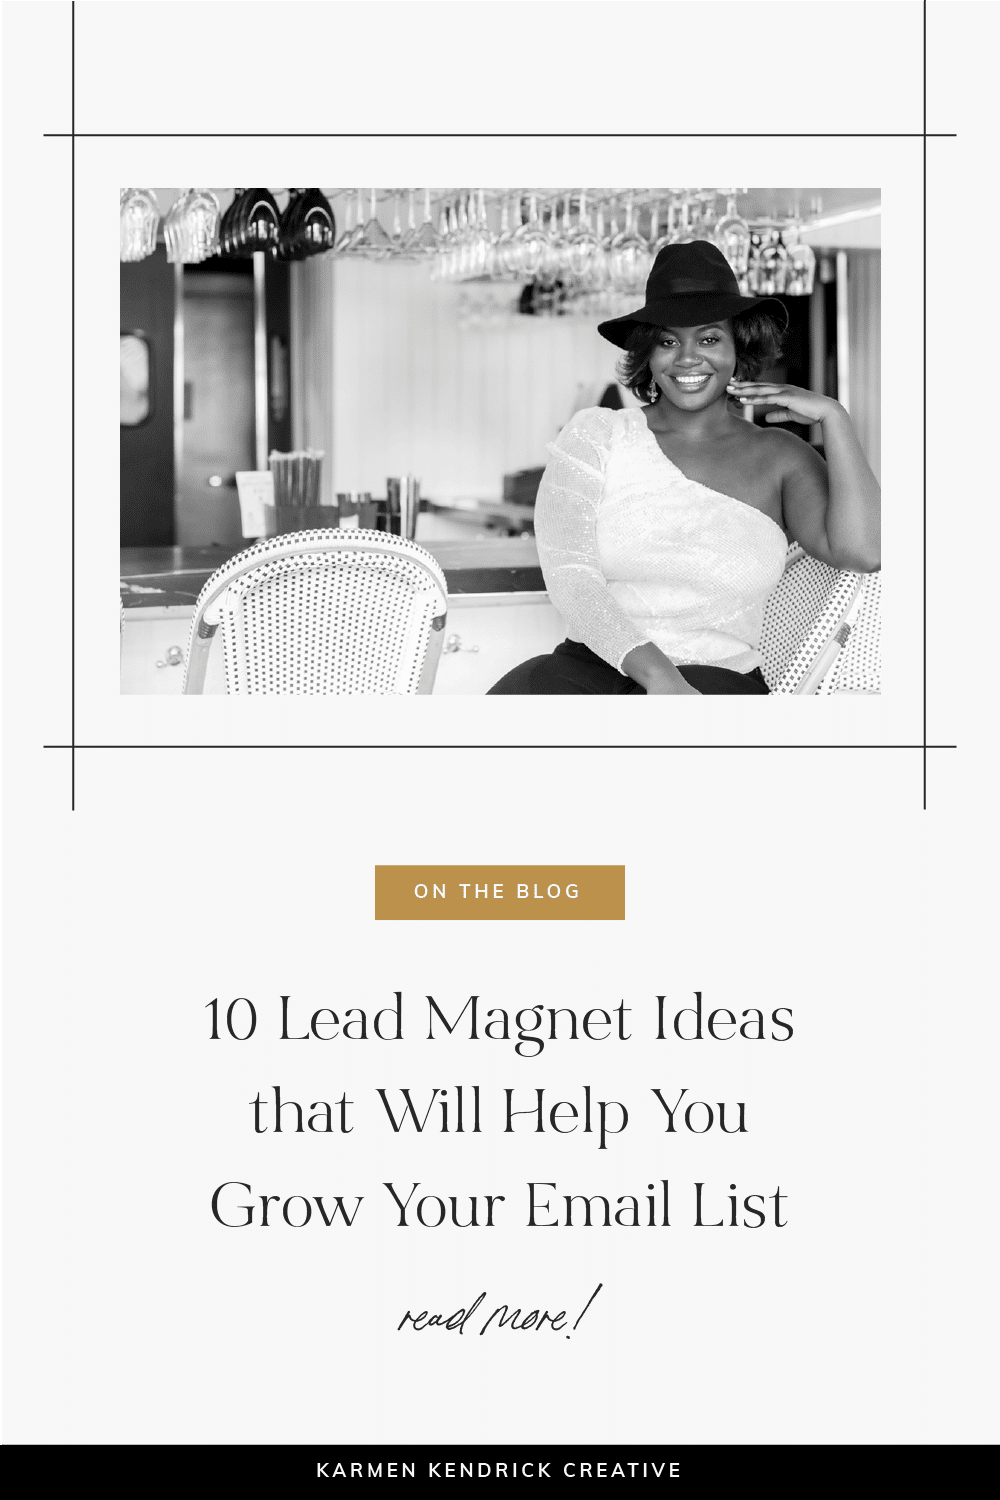 10 Lead Magnet Ideas that Will Grow Your Email List